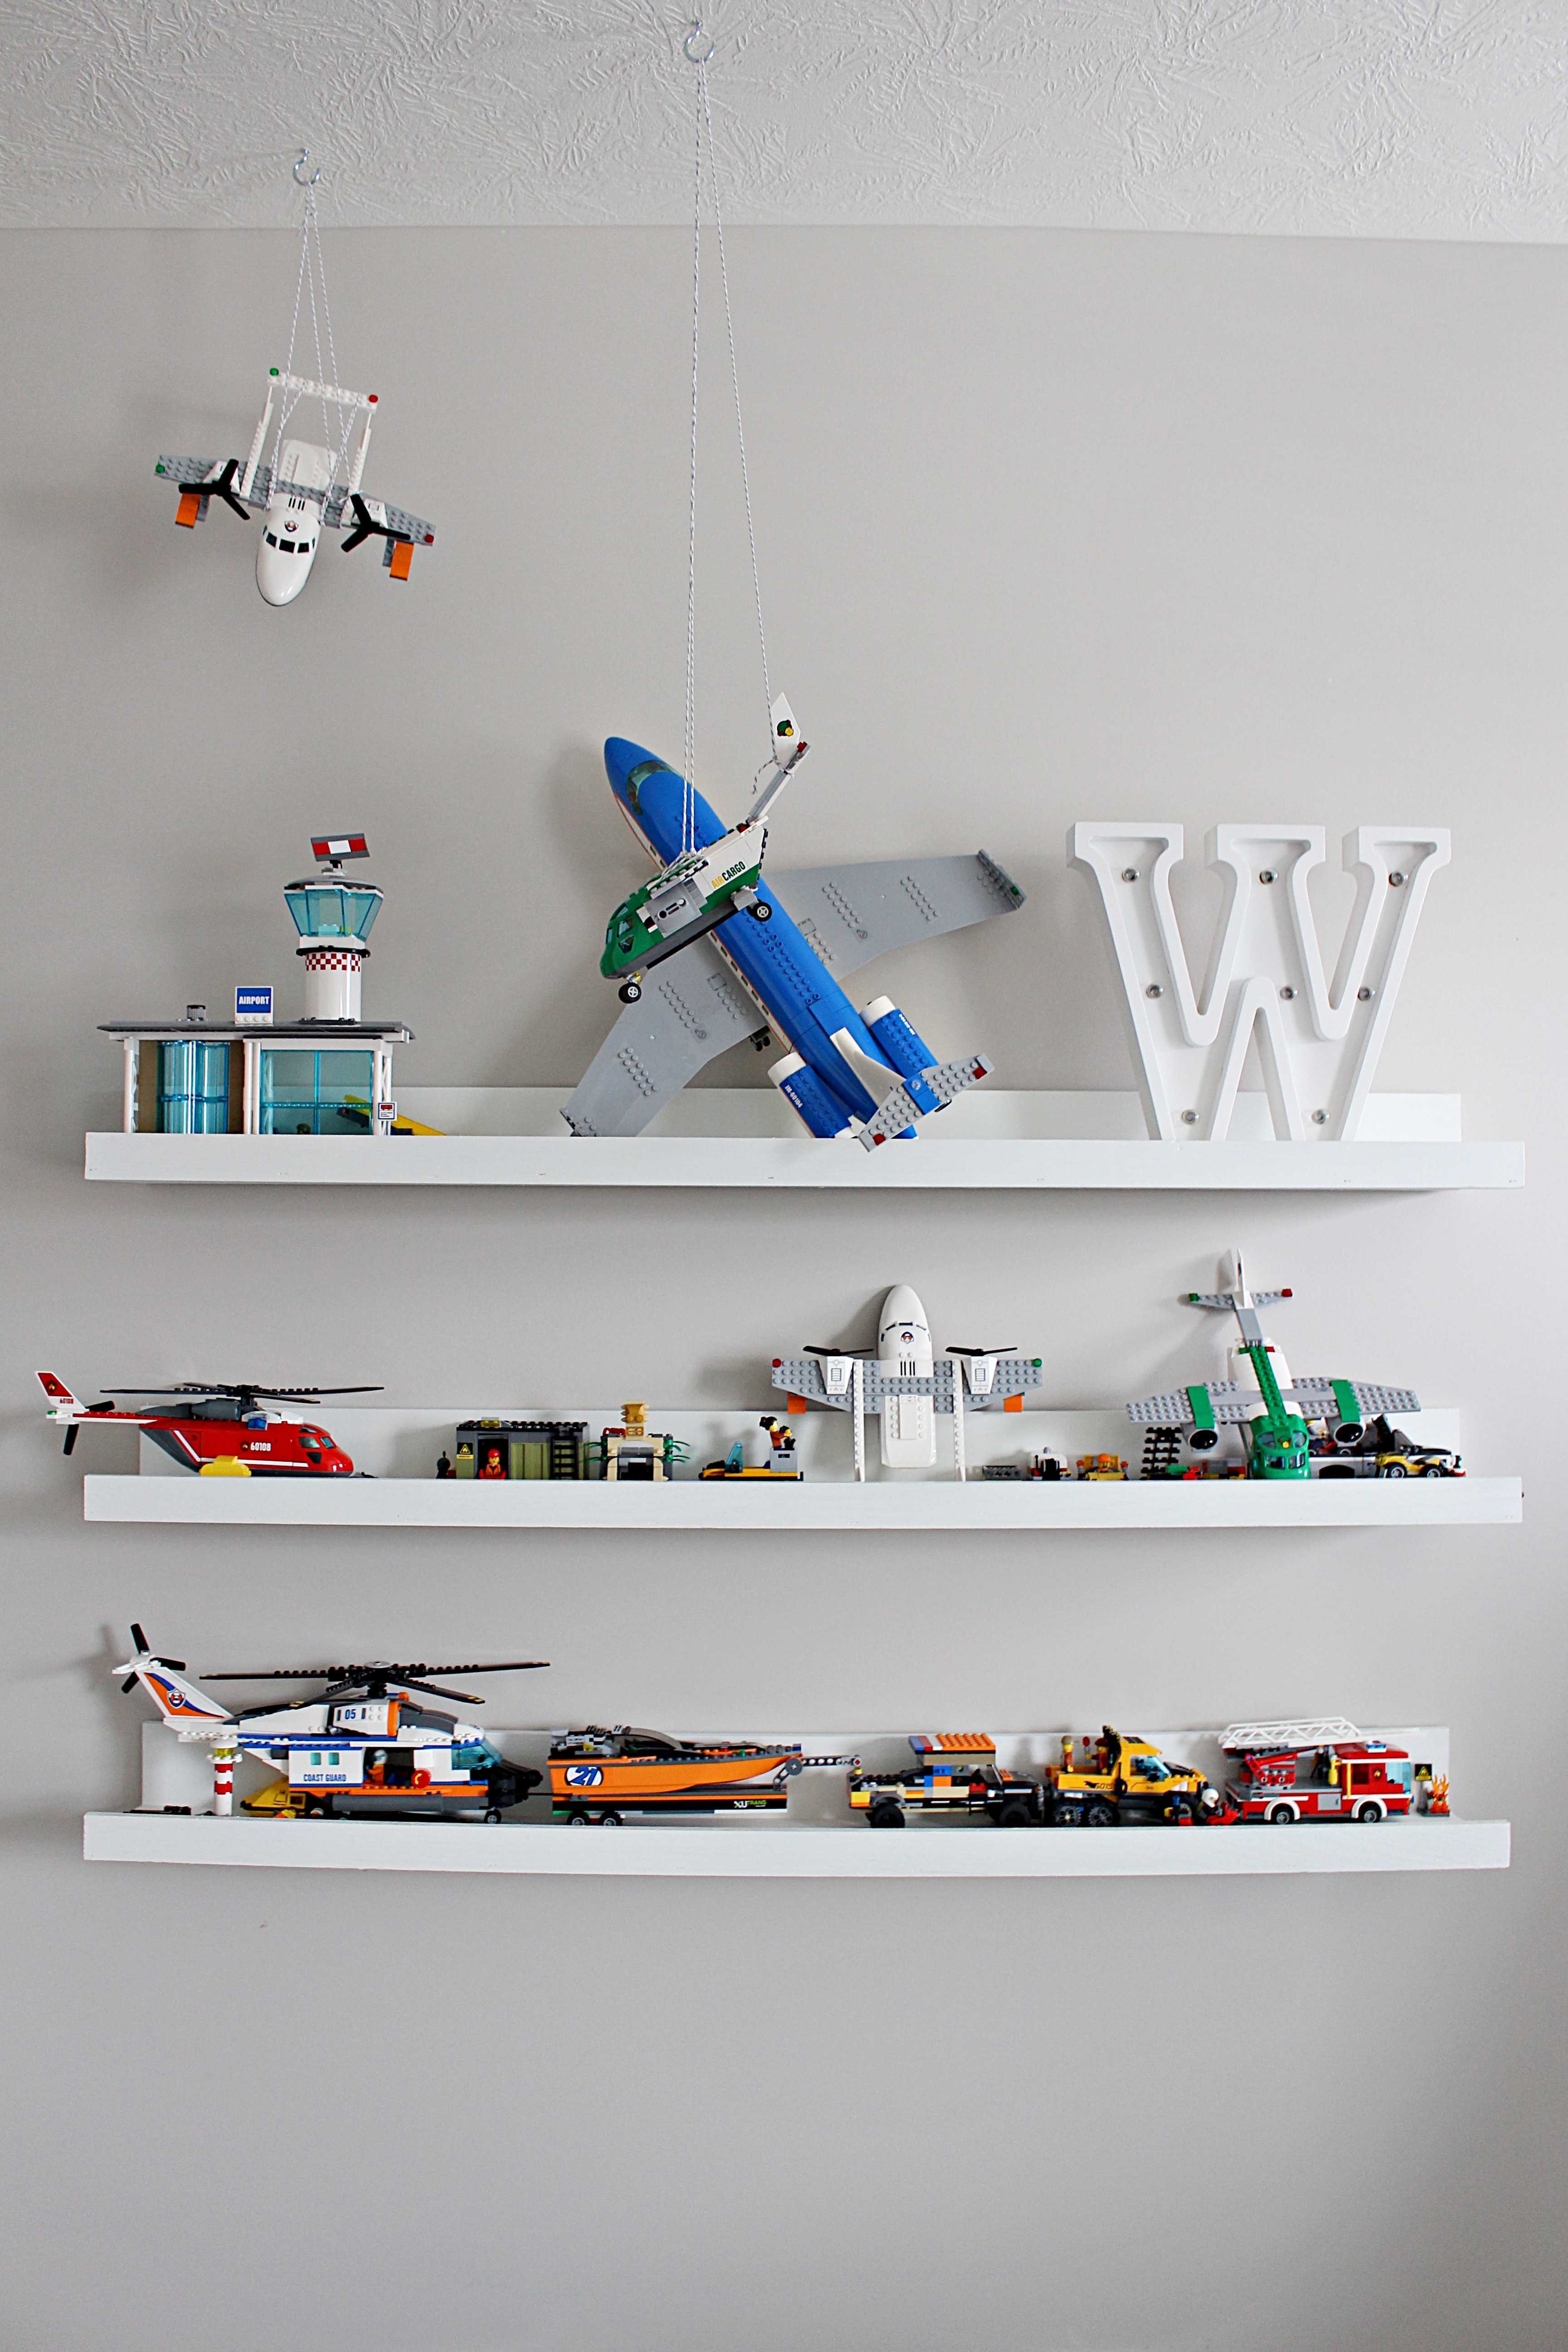 diy lego display shelf stately home lane img floating shelves for painting ikea best wall mounted coat rack wood beam mantel installing vinyl flooring over plywood desk and